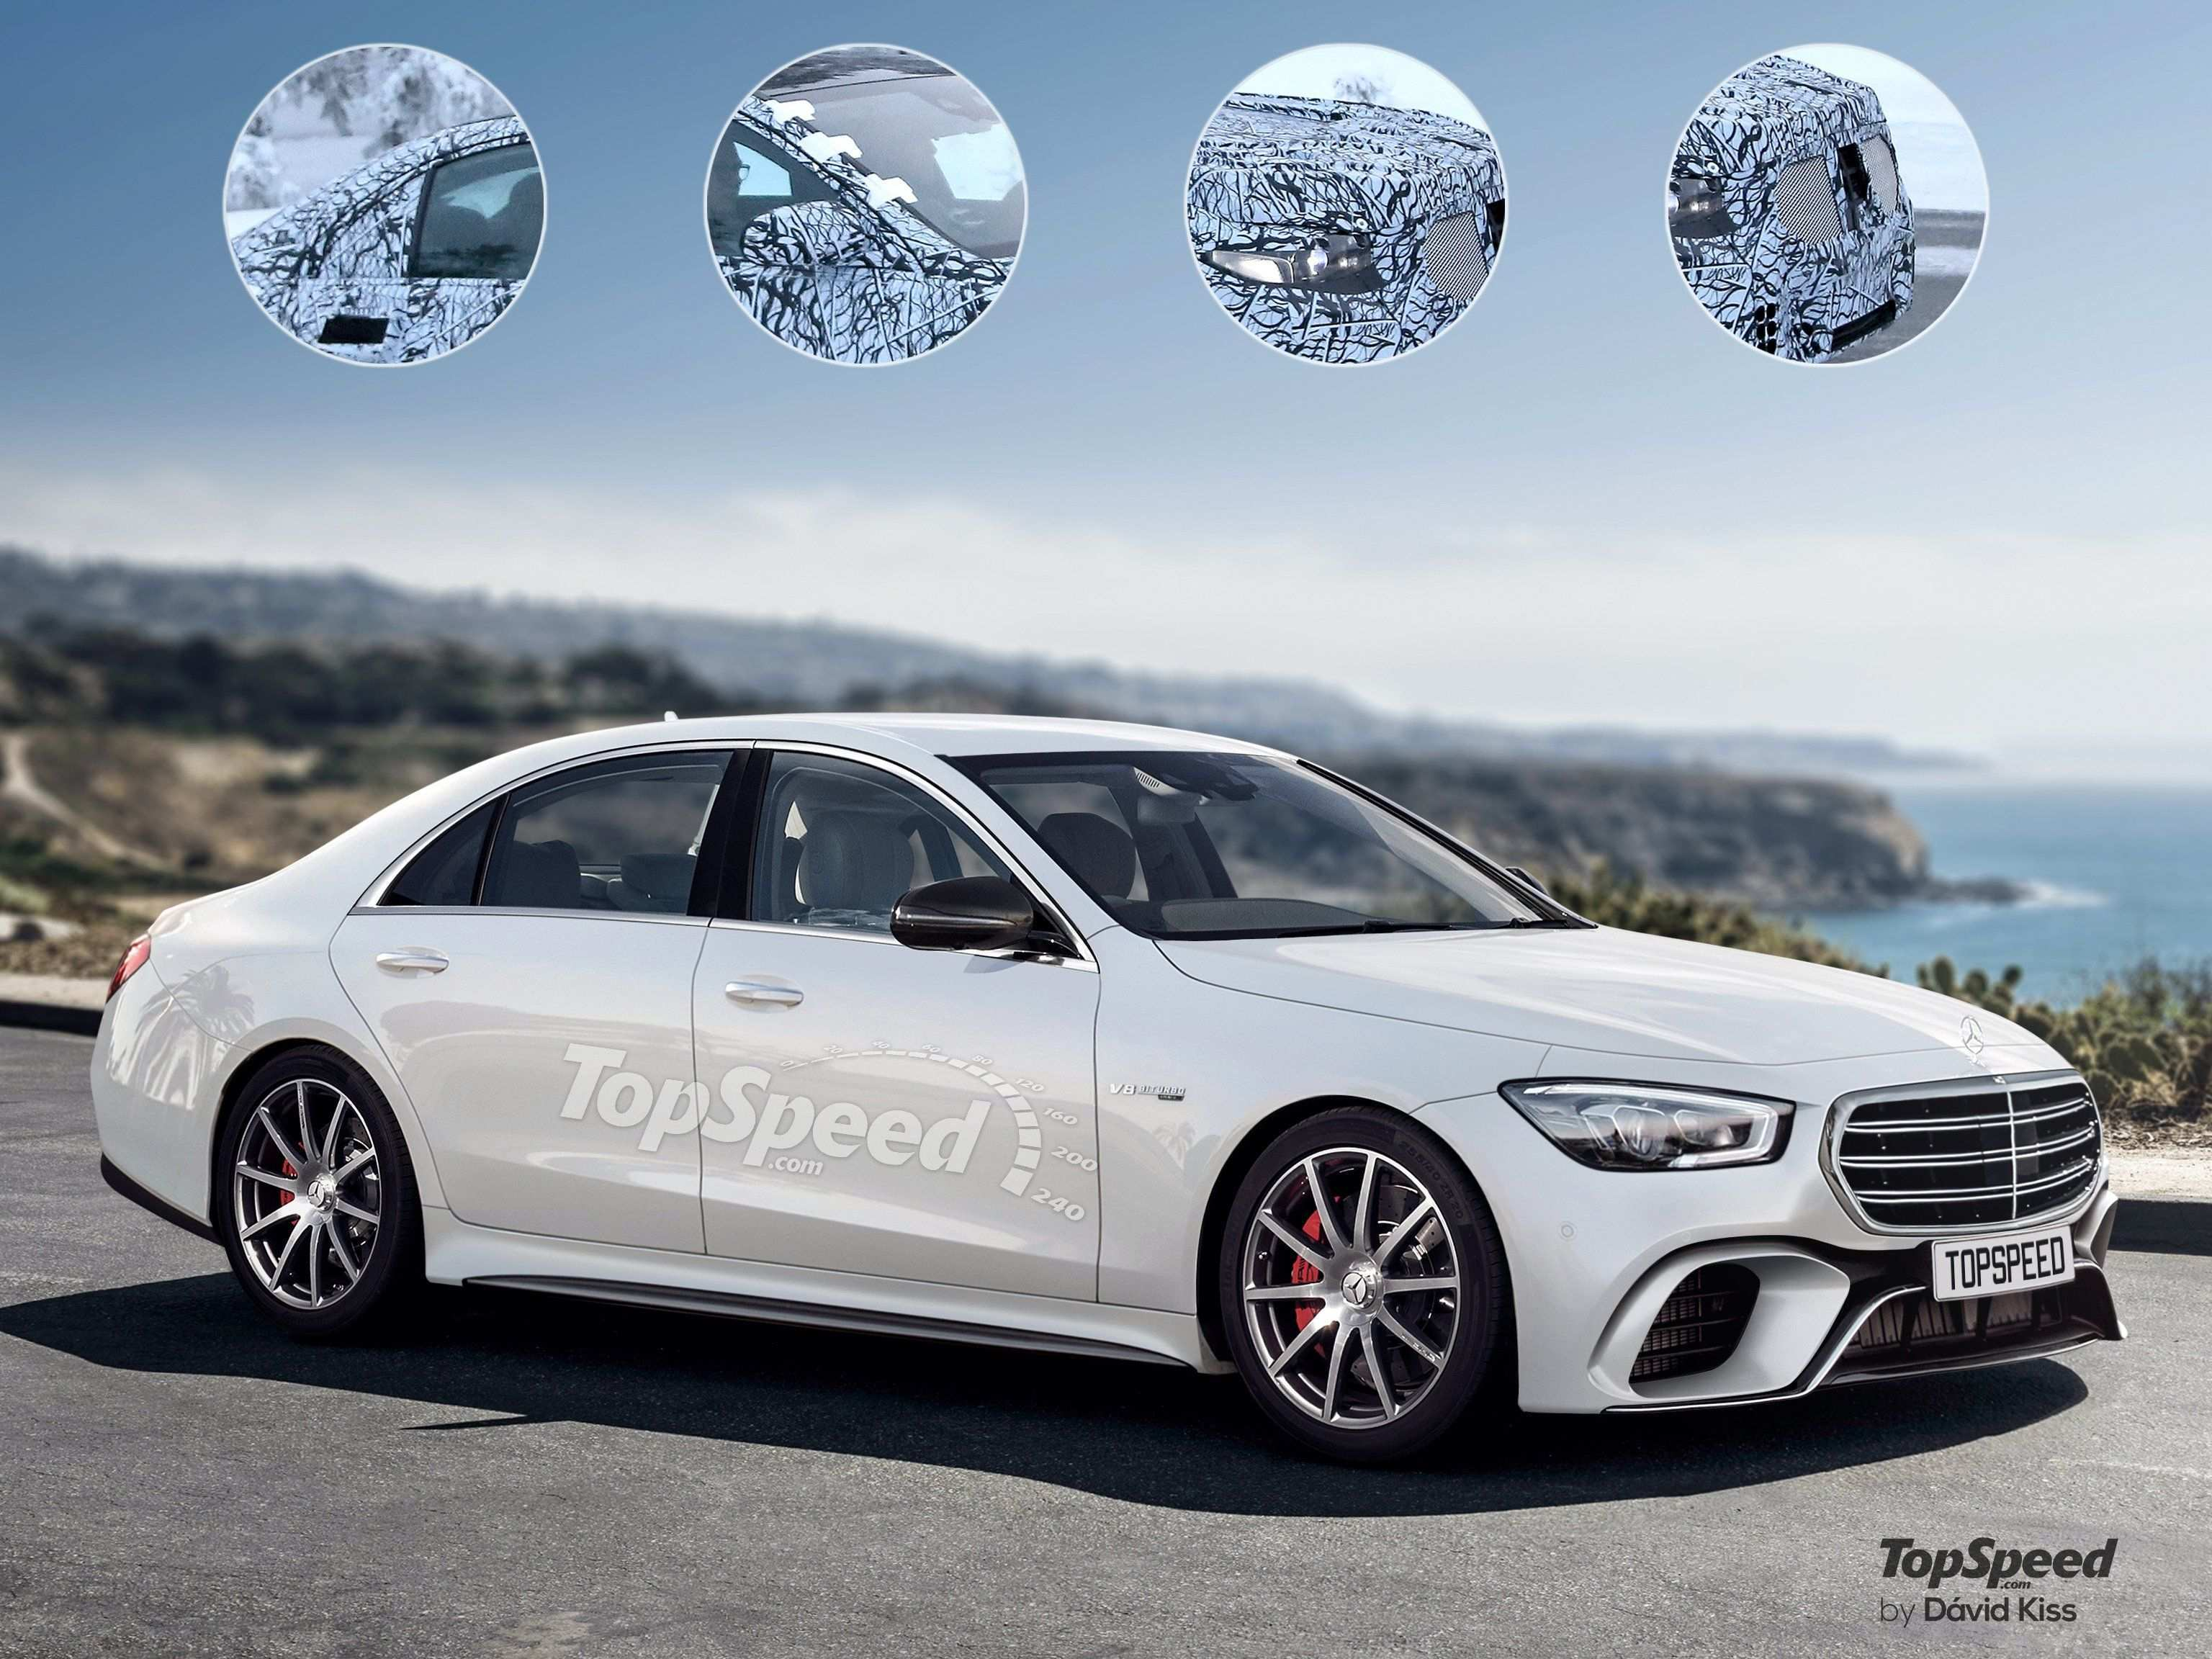 71 New 2020 Mercedes S Class New Concept Concept with 2020 Mercedes S Class New Concept